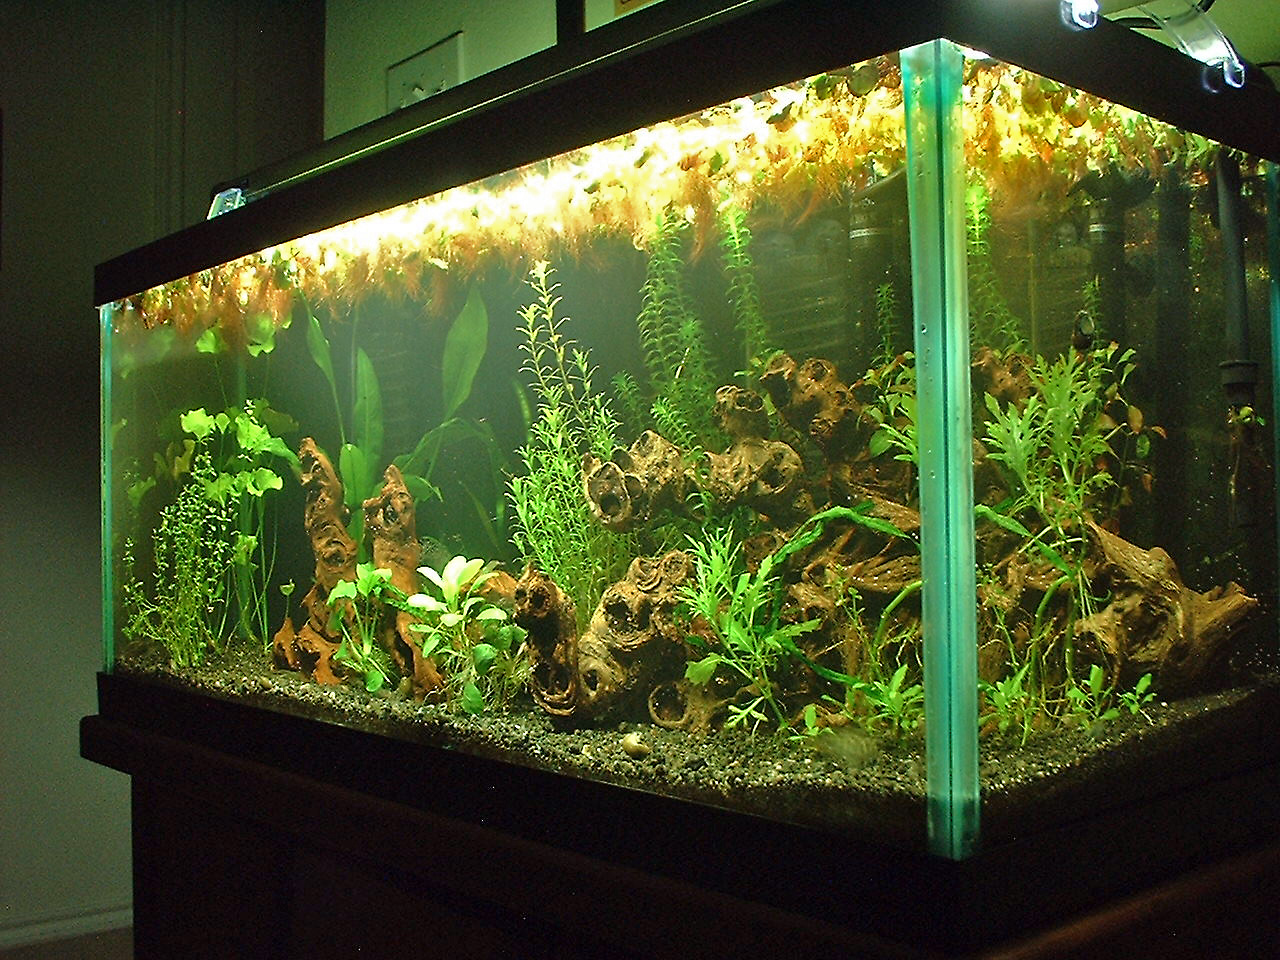 30 gallon planted aquarium a photo on flickriver for Planted tank fish